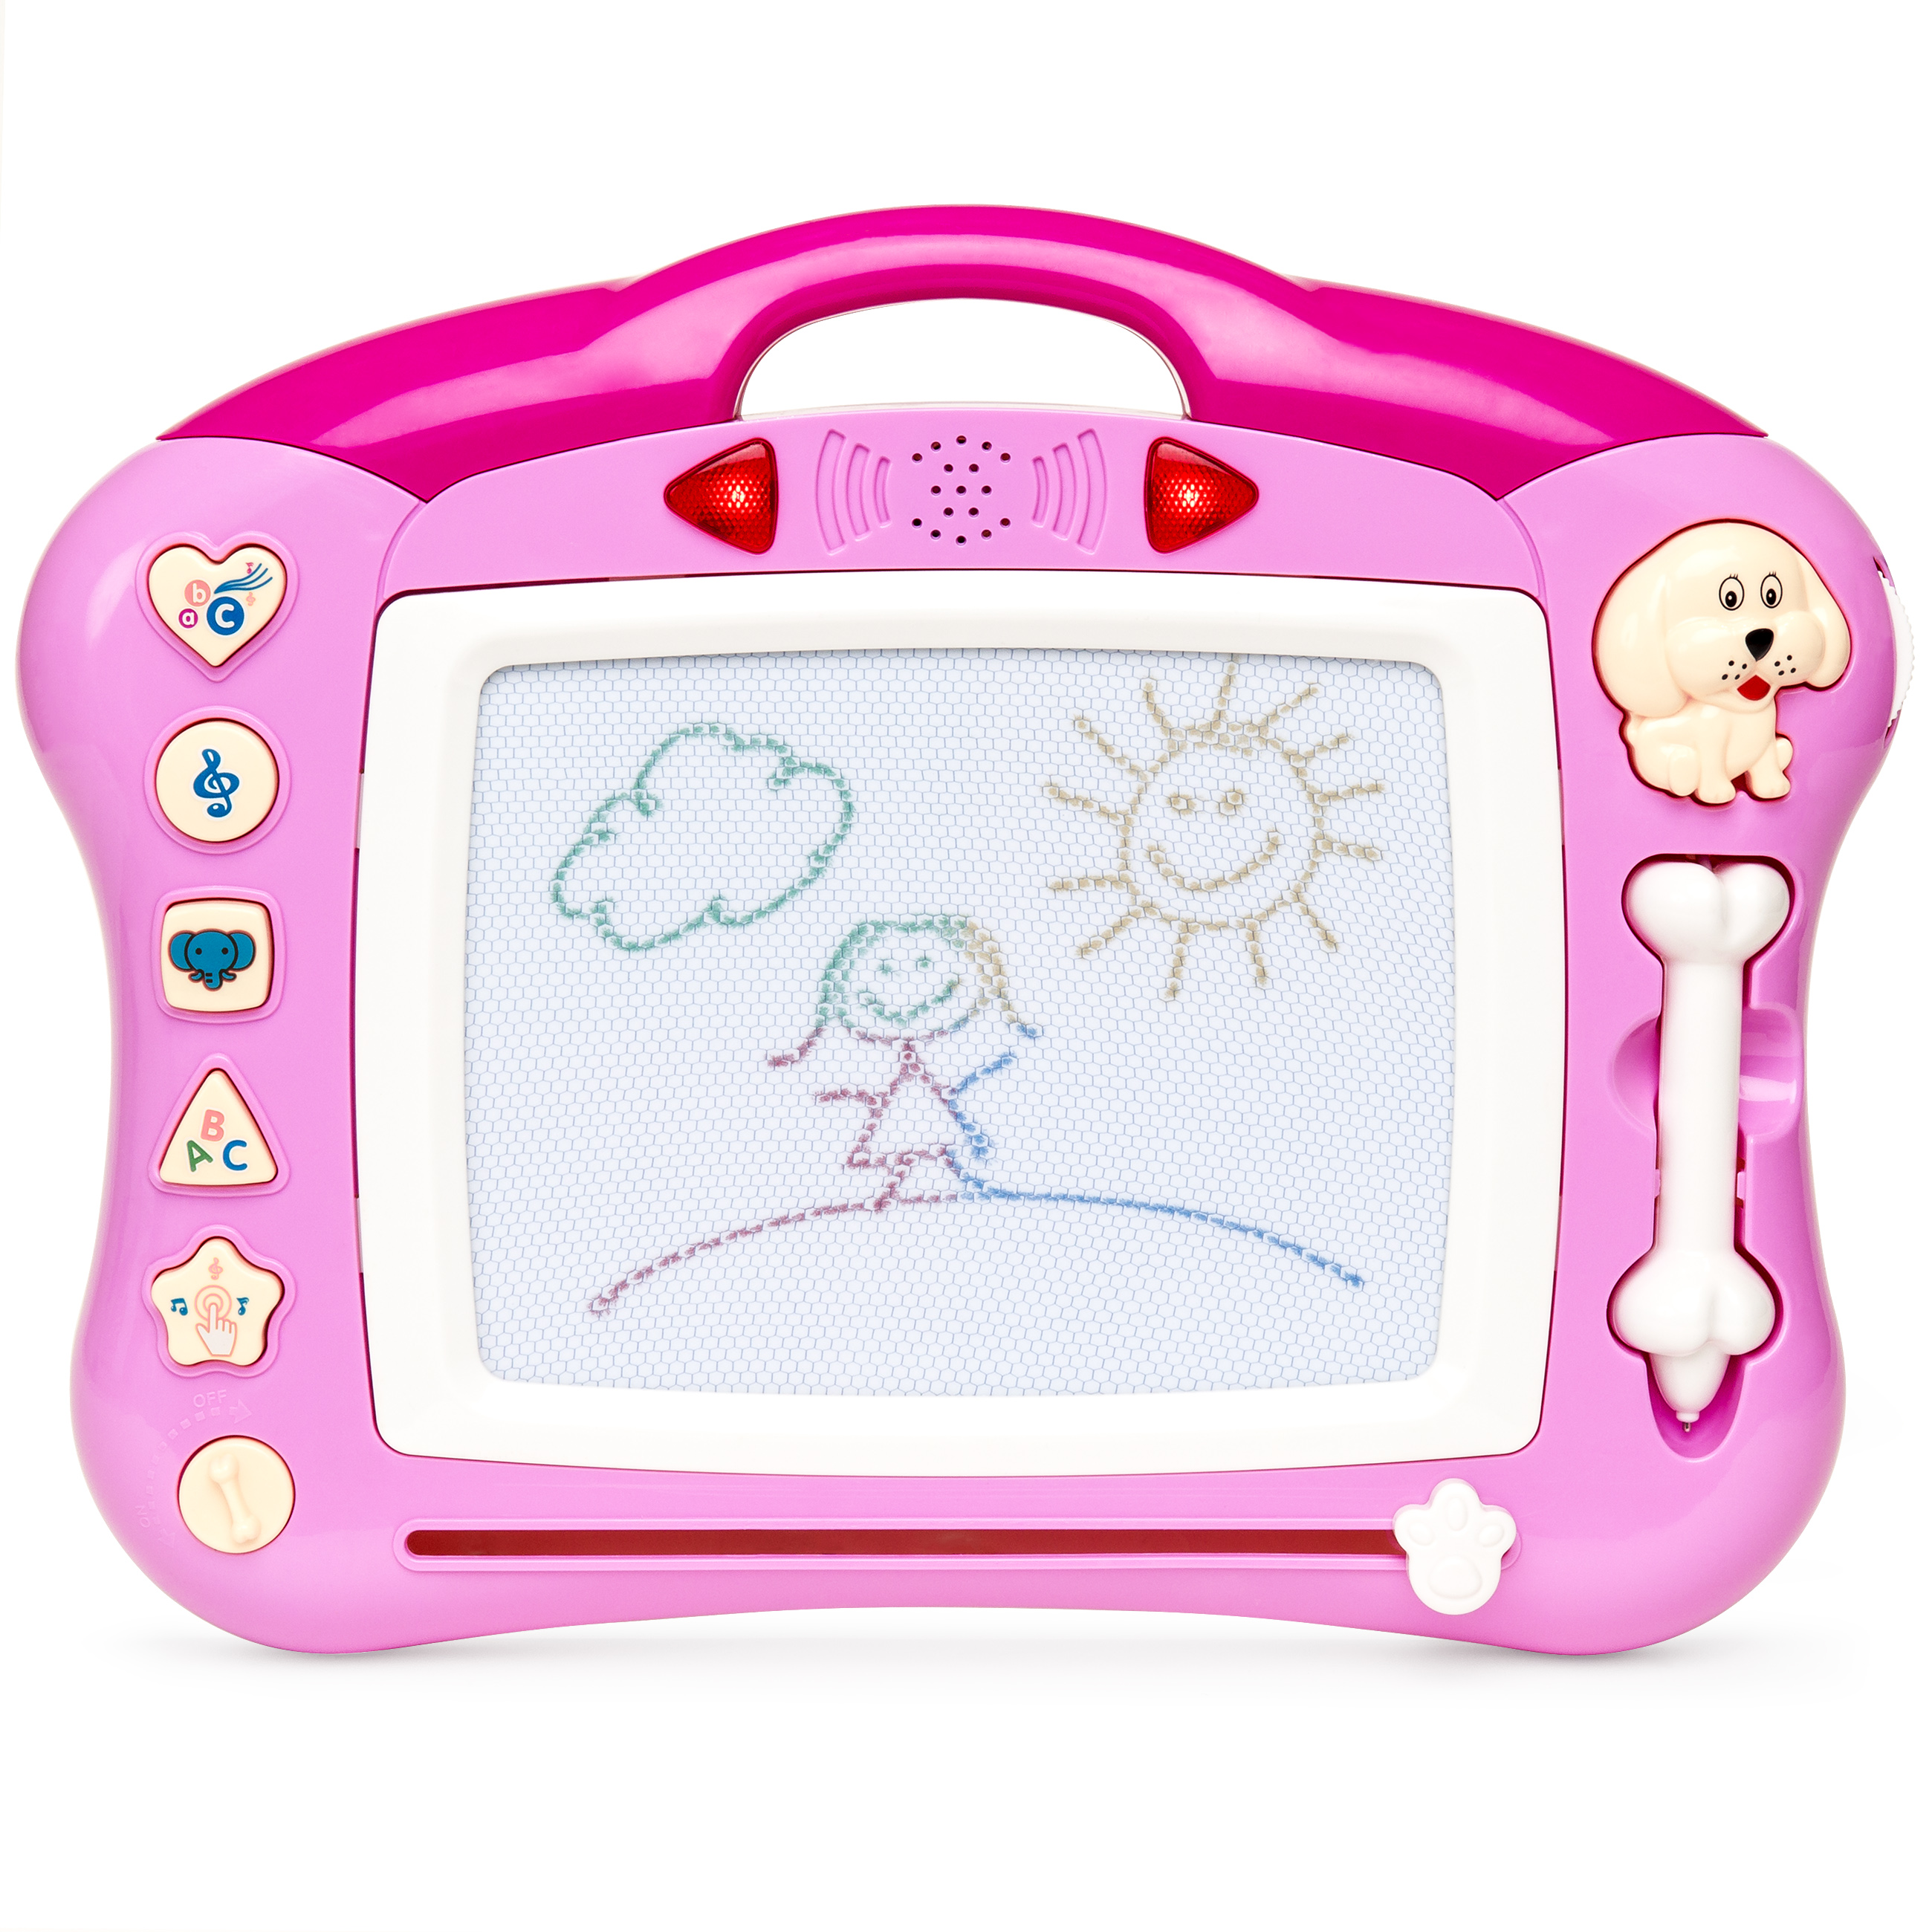 Best Choice Products Magnetic Drawing Kid Learning Doodle Pad with Retractable Pen & Musical Tunes (Pink)